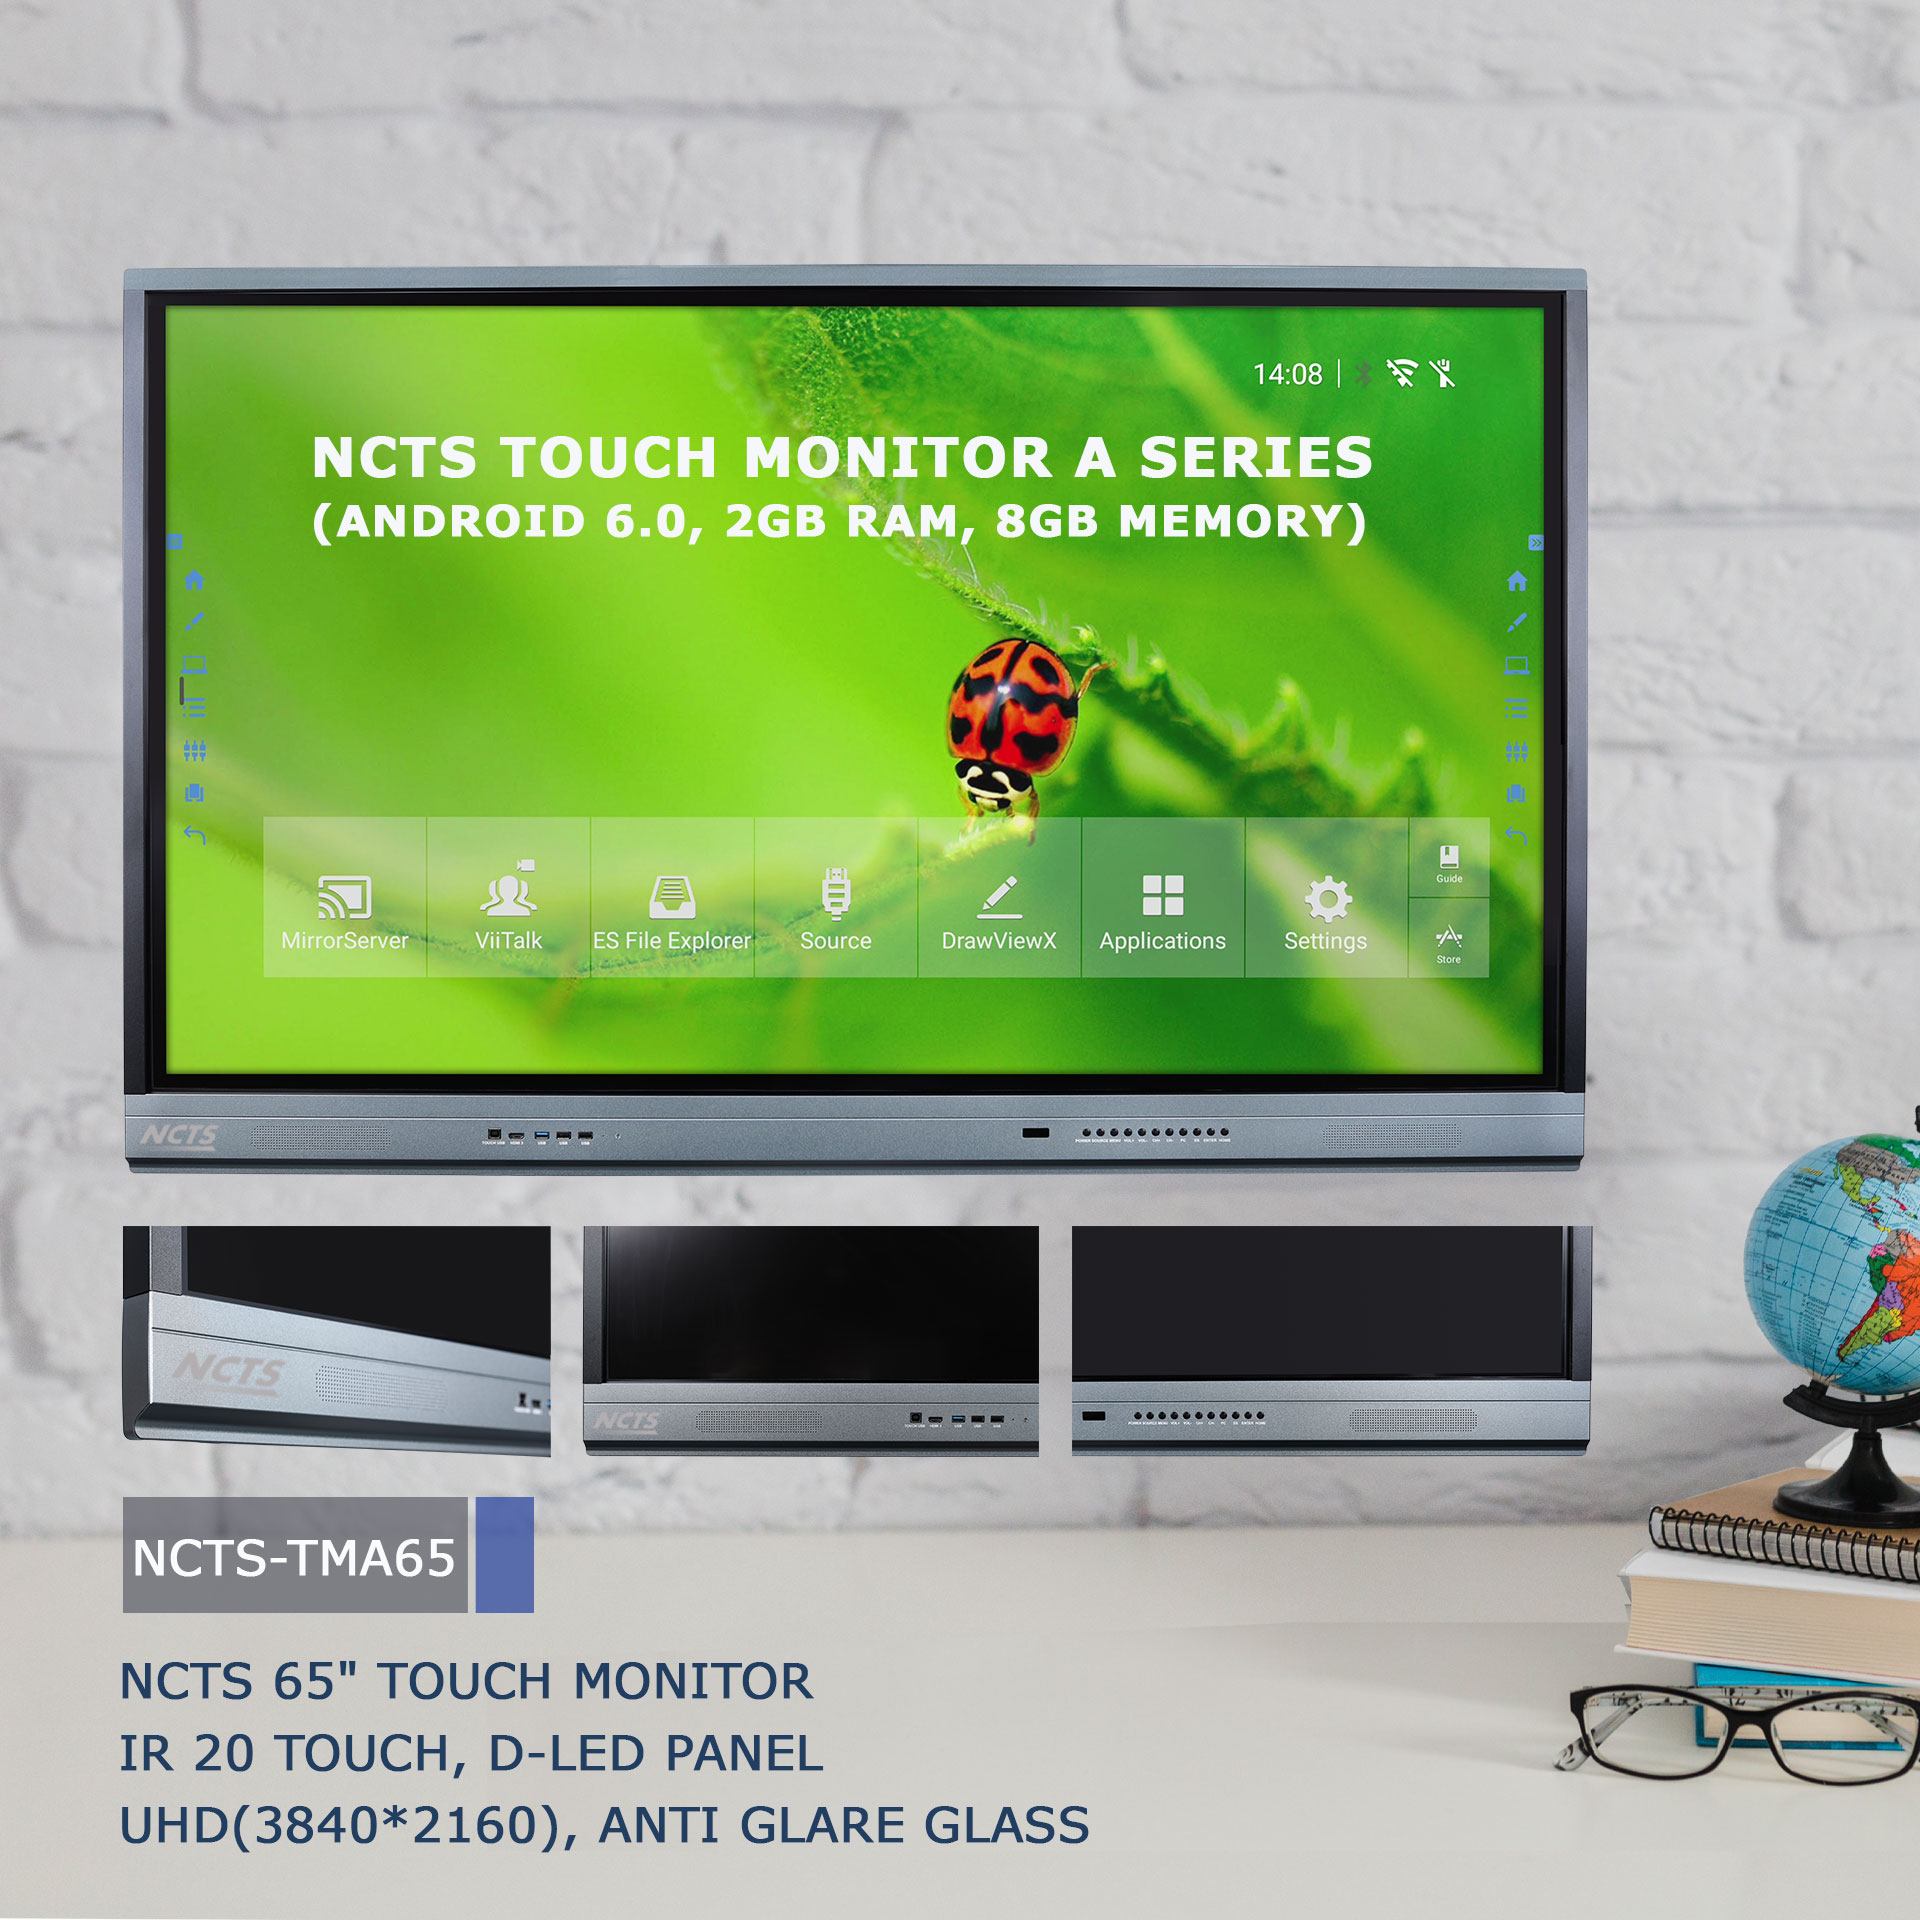 NCTS-TMA65